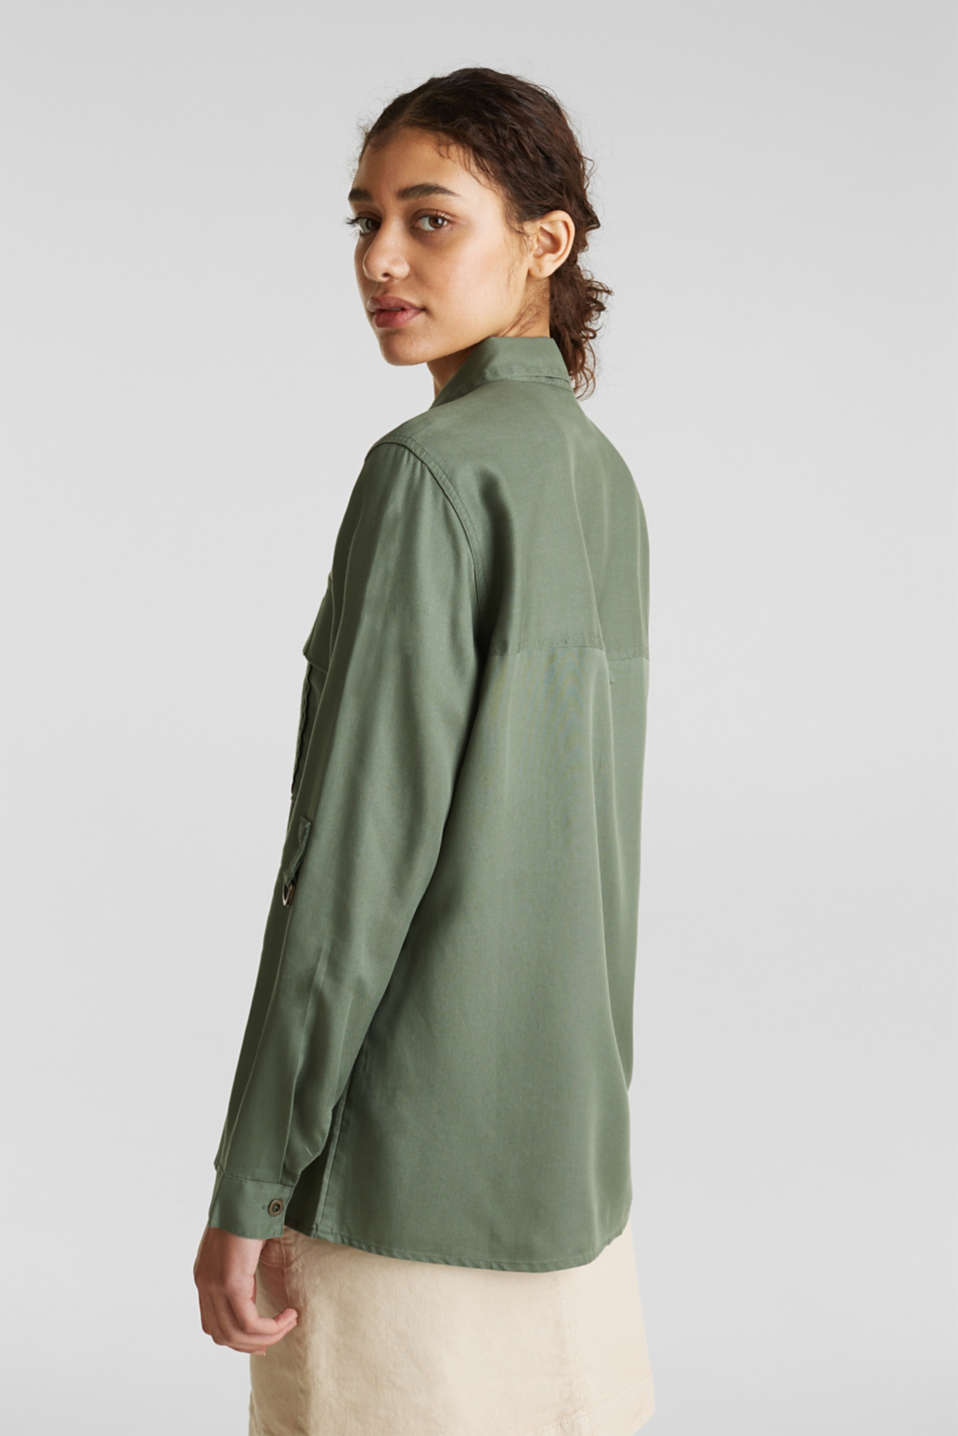 Utility blouse made of lyocell, KHAKI GREEN, detail image number 3